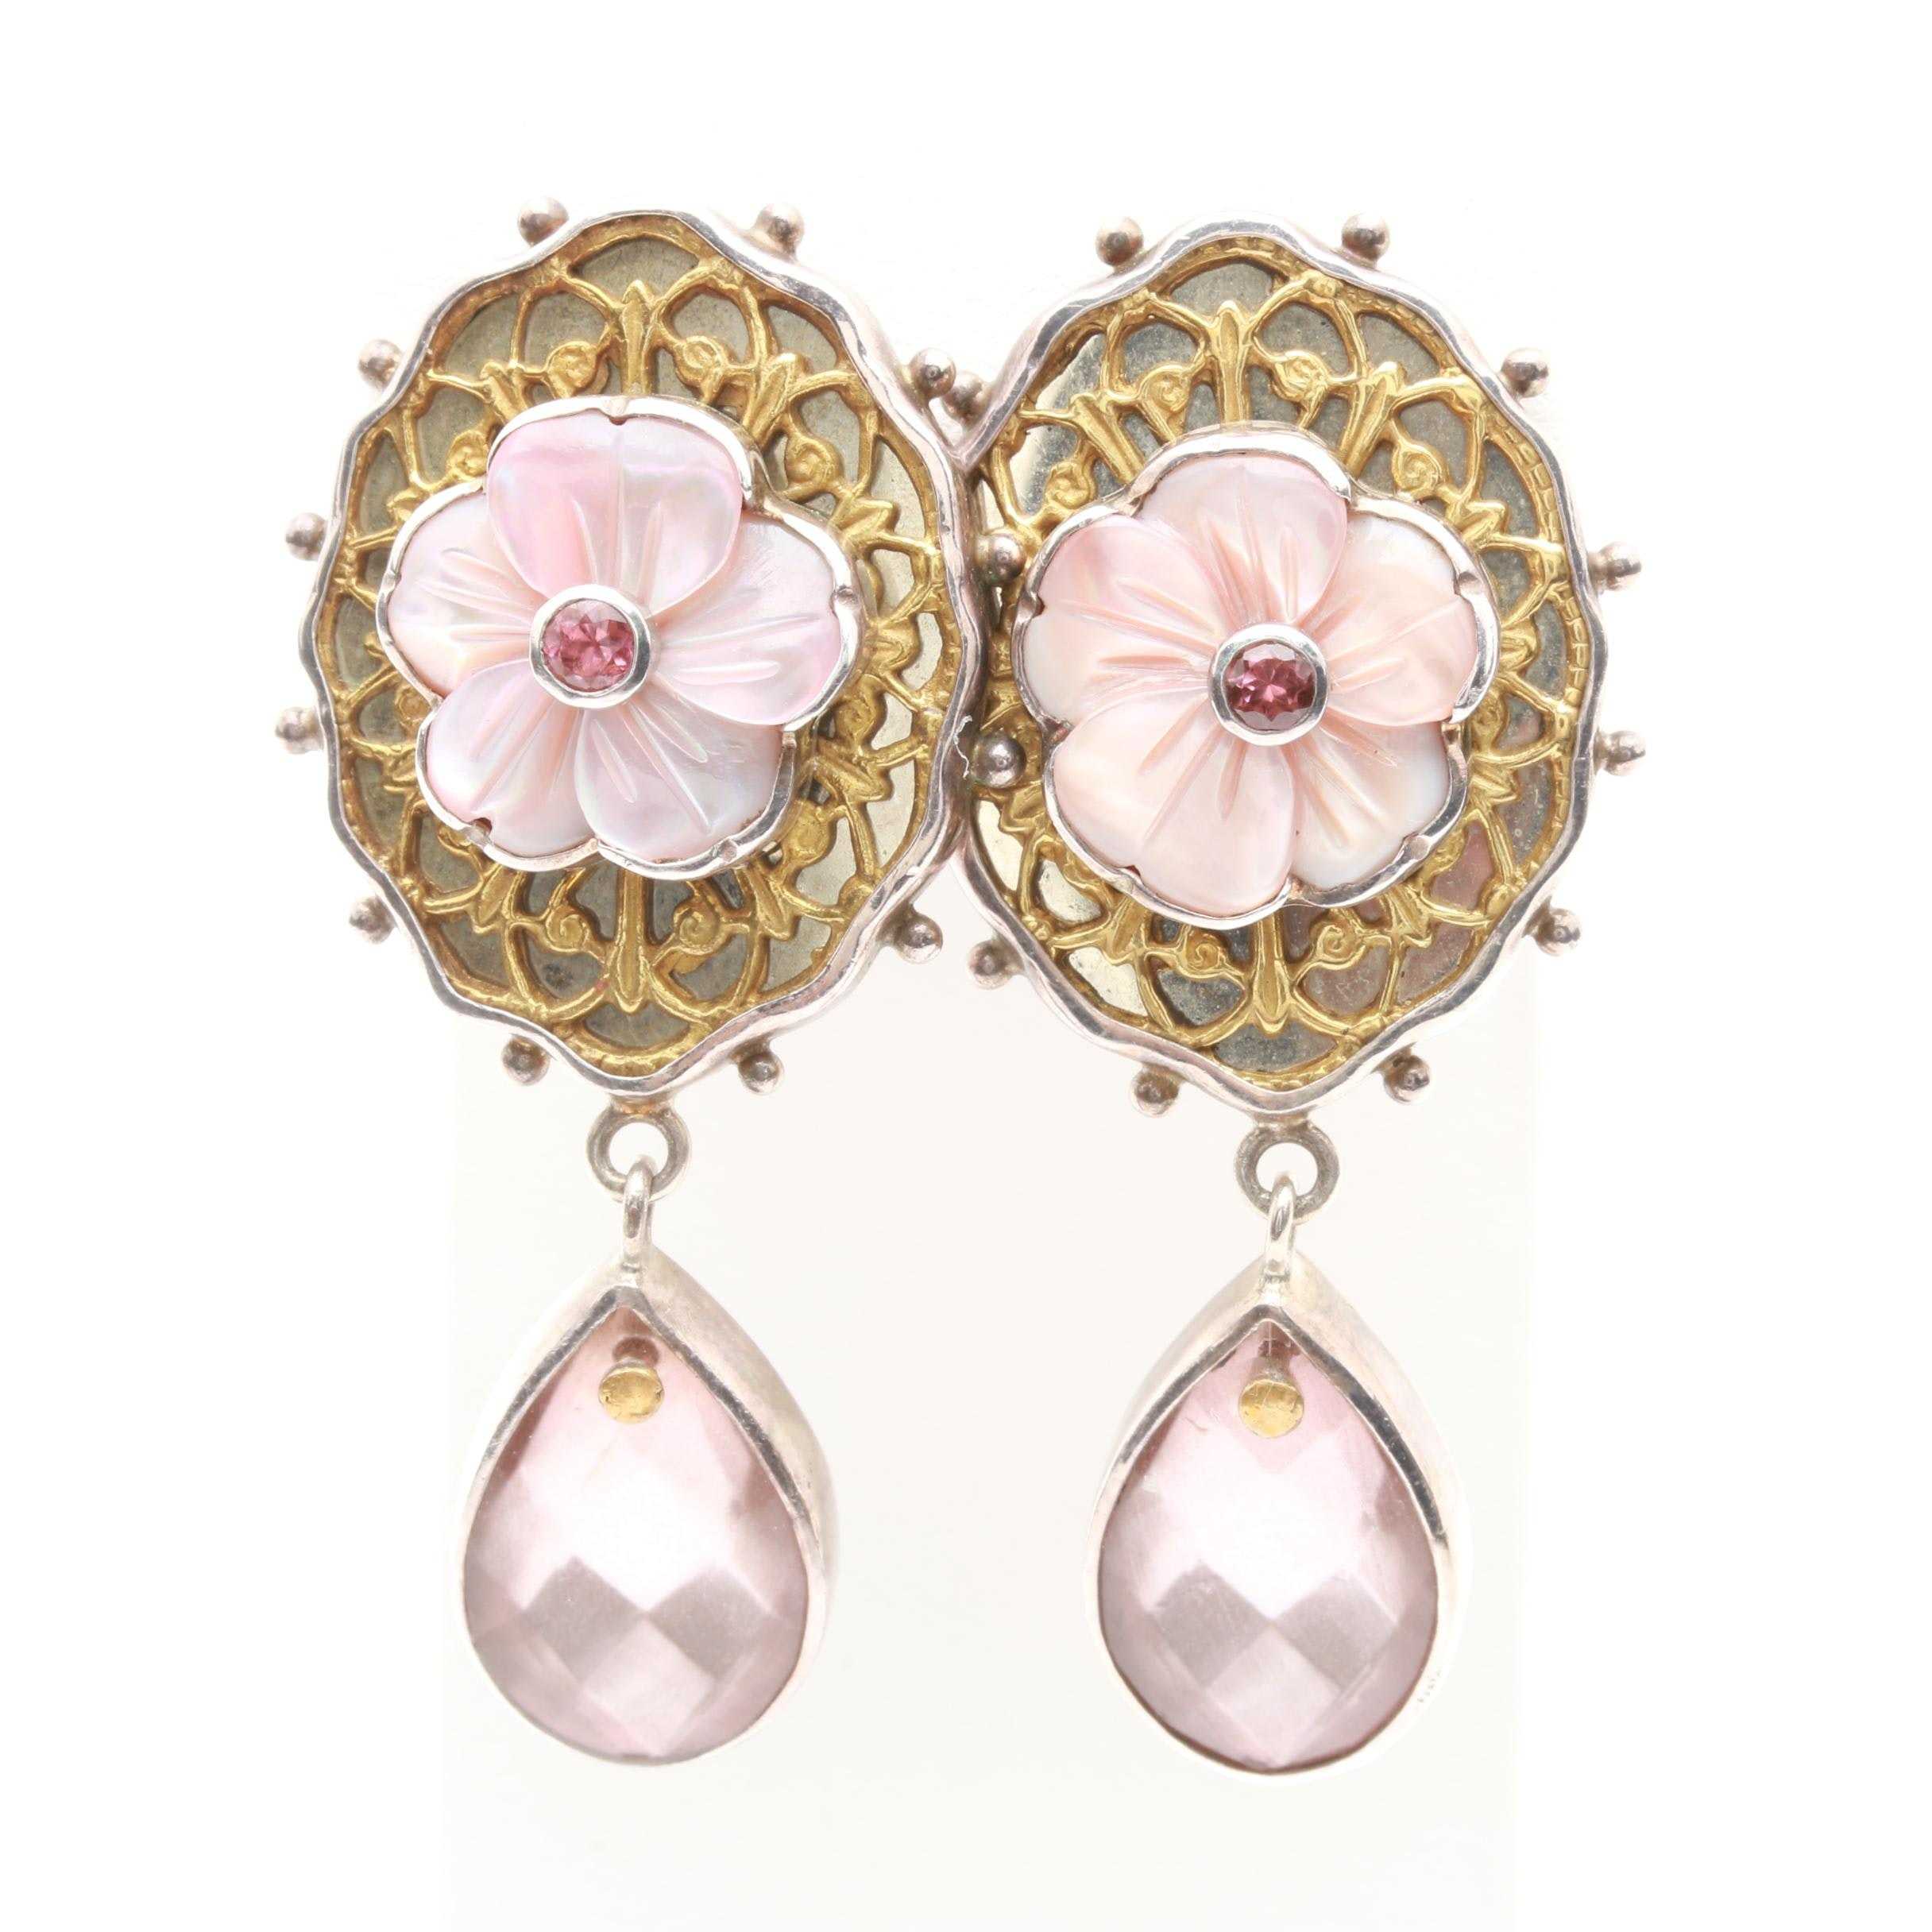 Mars and Valentine Sterling Silver Gemstone Earrings Including Pink Tourmaline